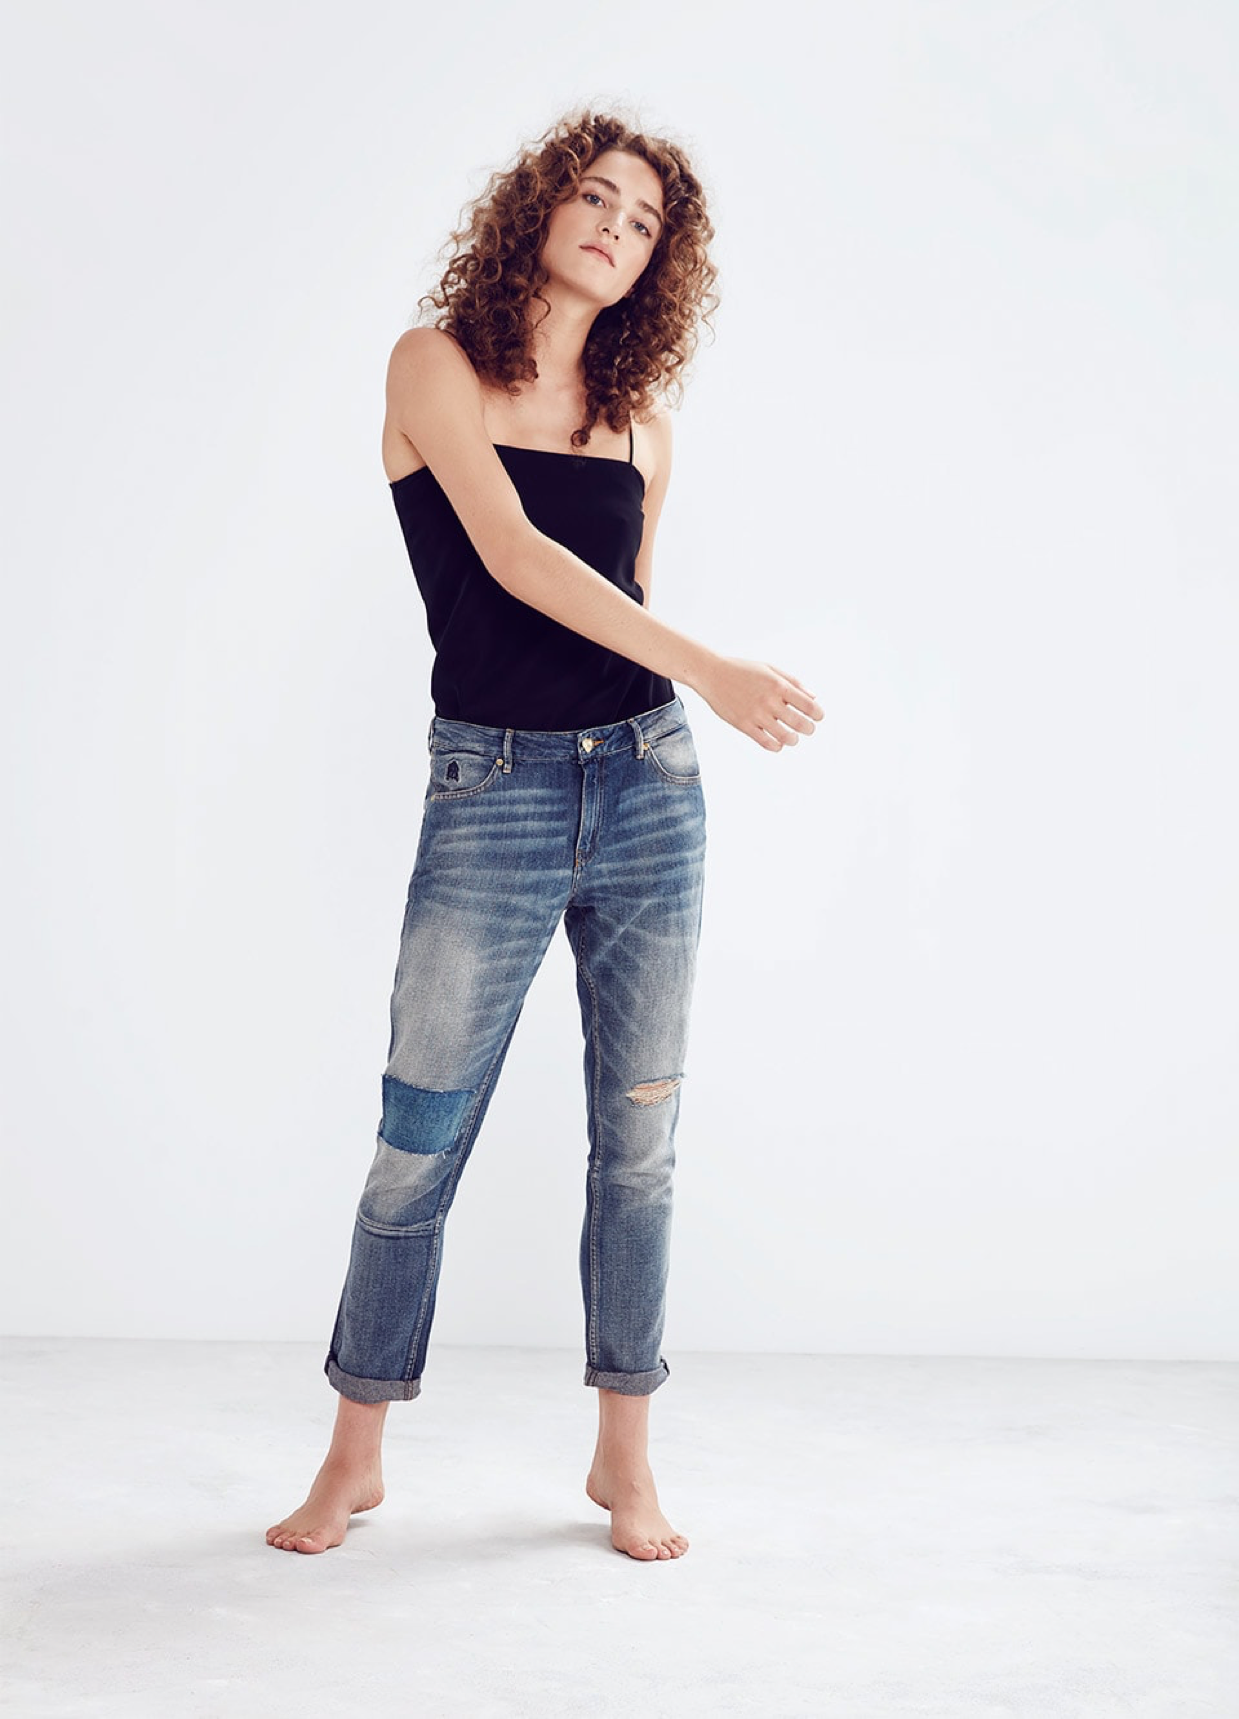 Denim fit guide women.